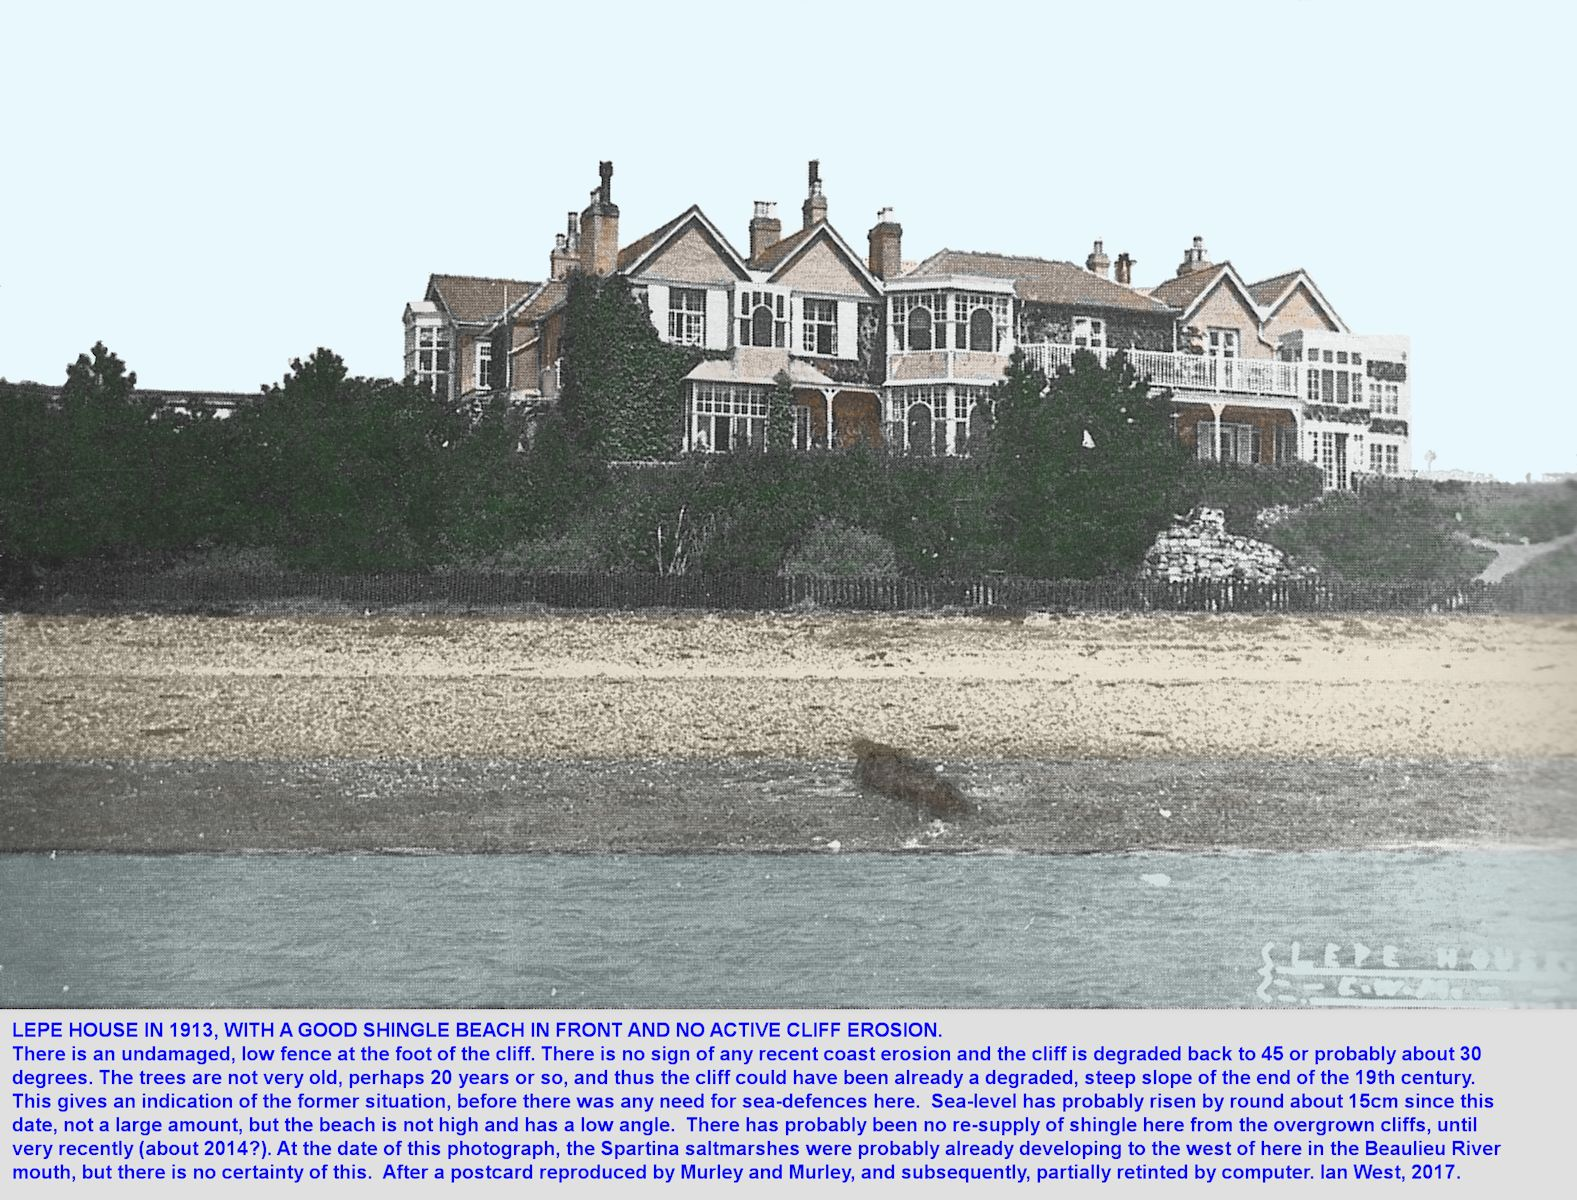 Lepe House in 1913, showing an apparently stable shingle beach and with no cliff erosion taking place, Lepe, Hampshire